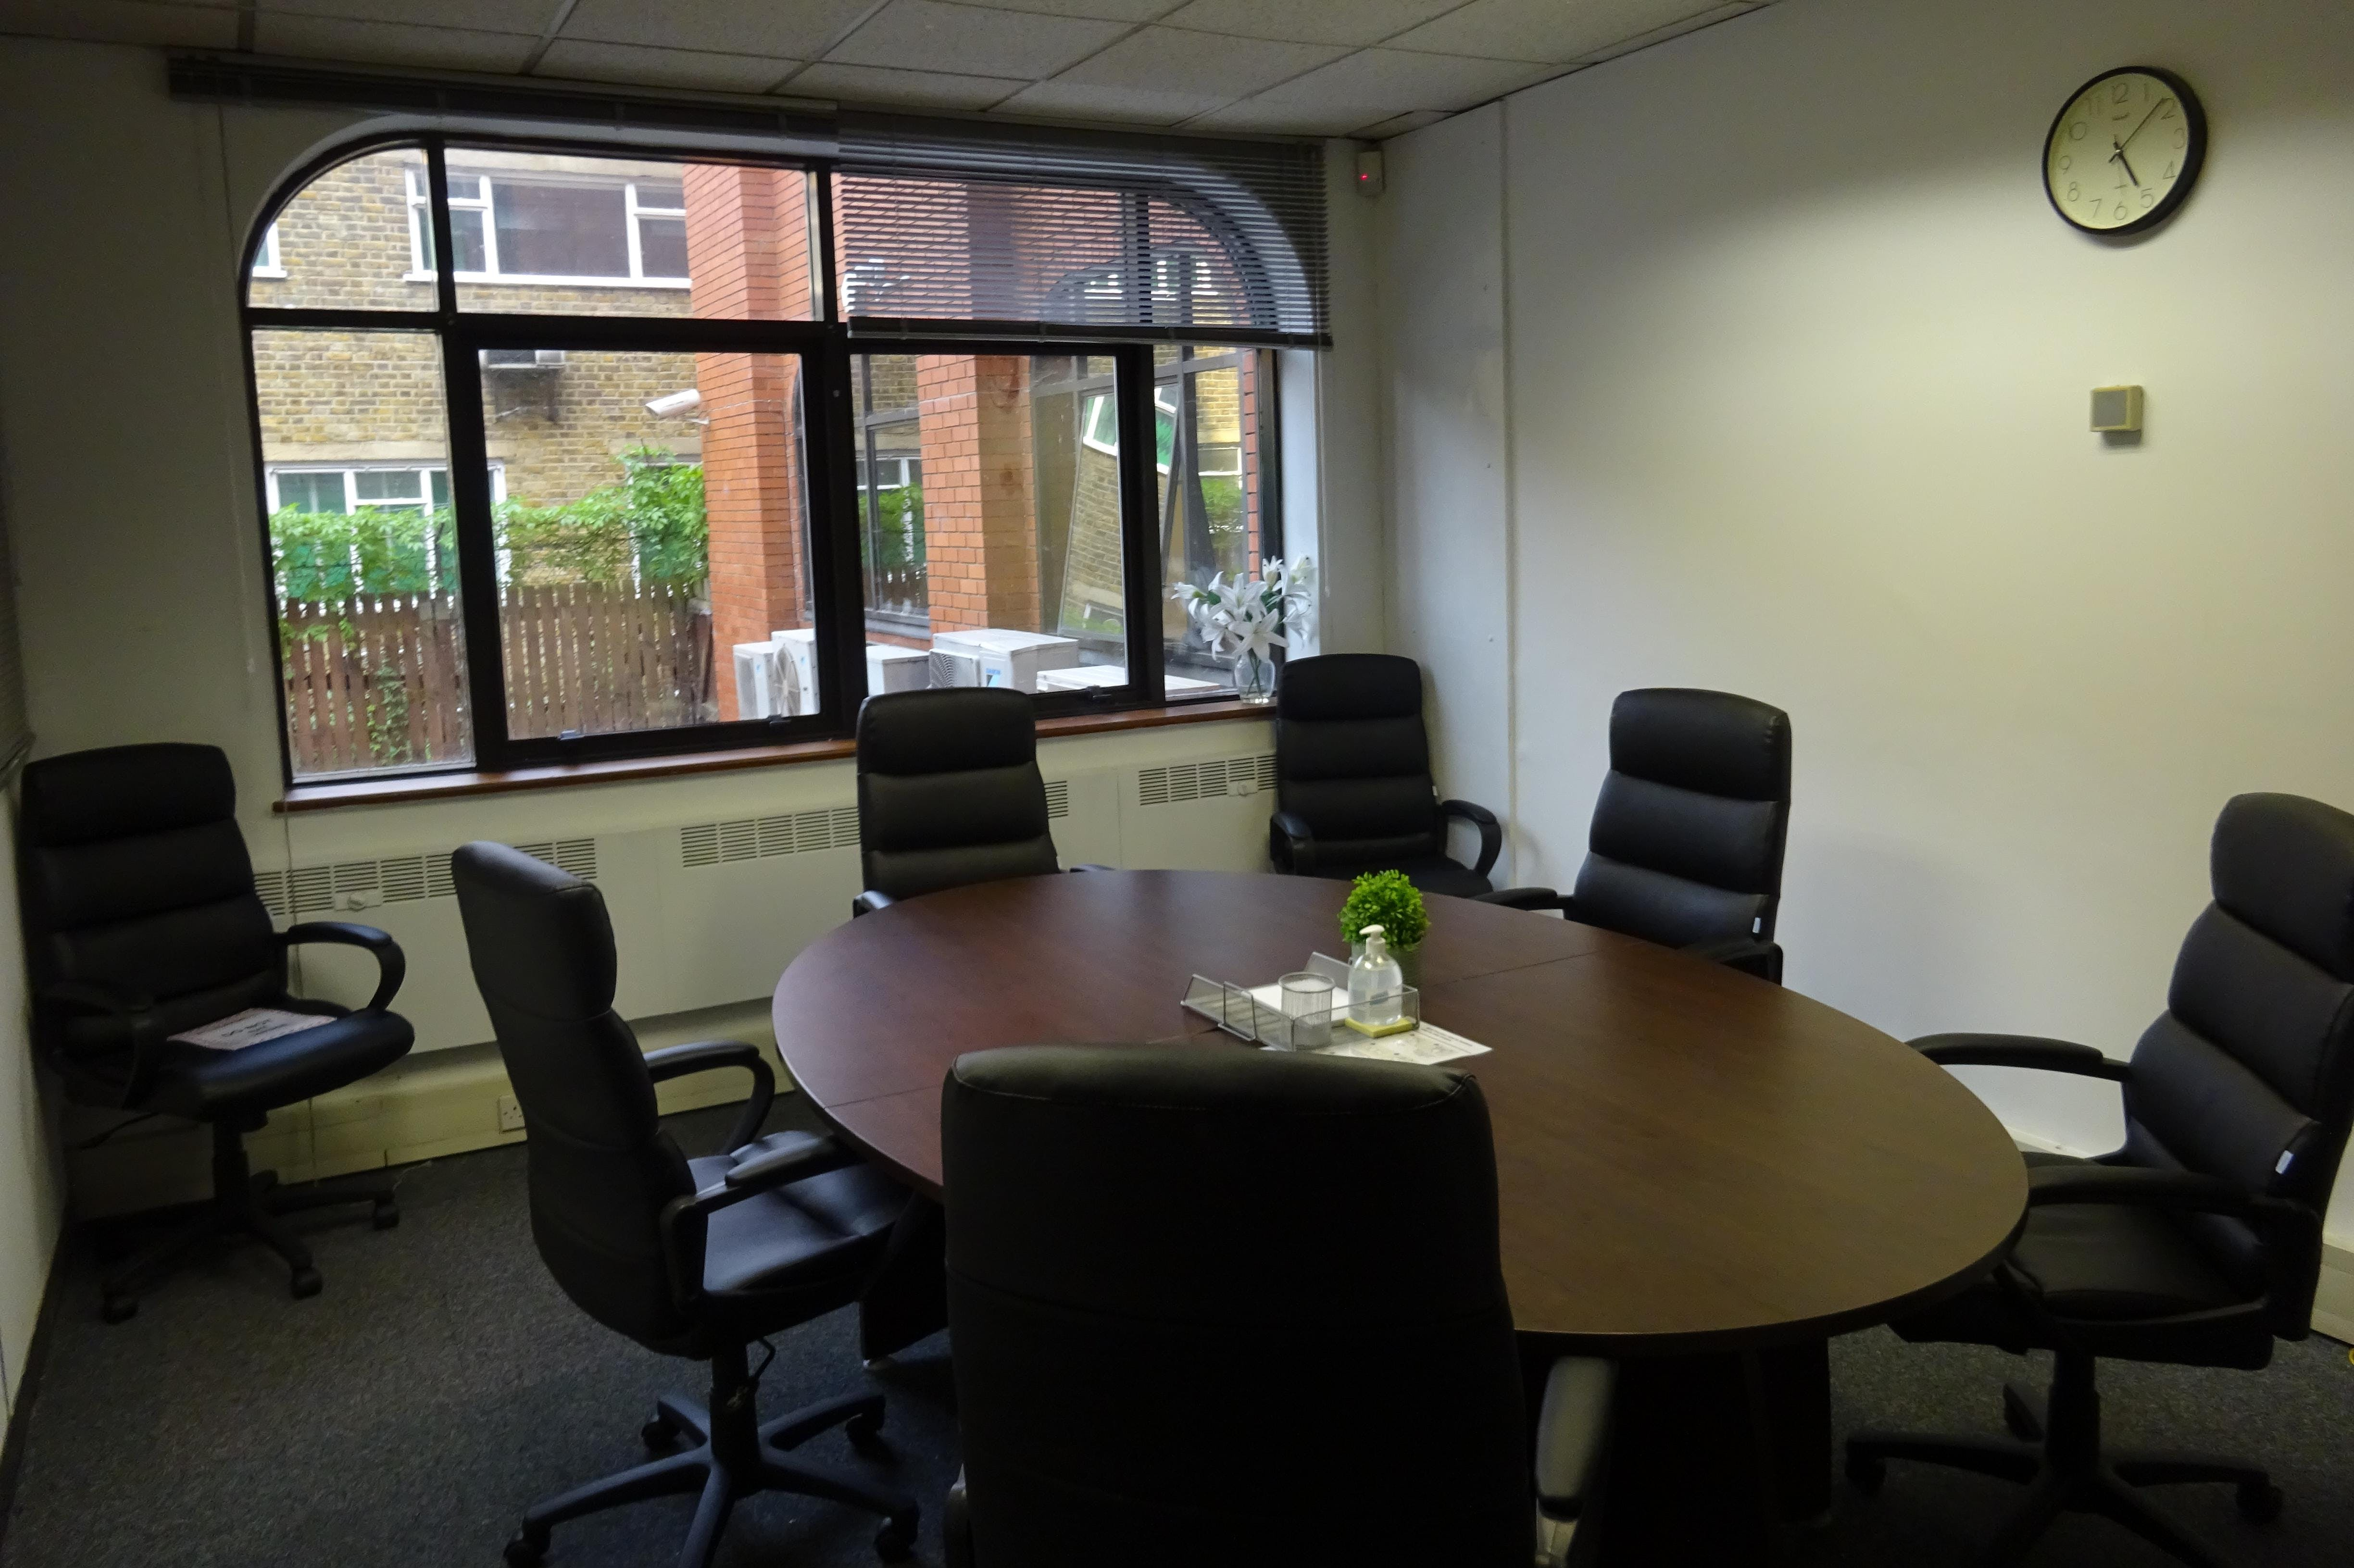 Queens Court, 9-17 Eastern Road, Romford, Offices To Let - Romford_Office_Renting.JPG